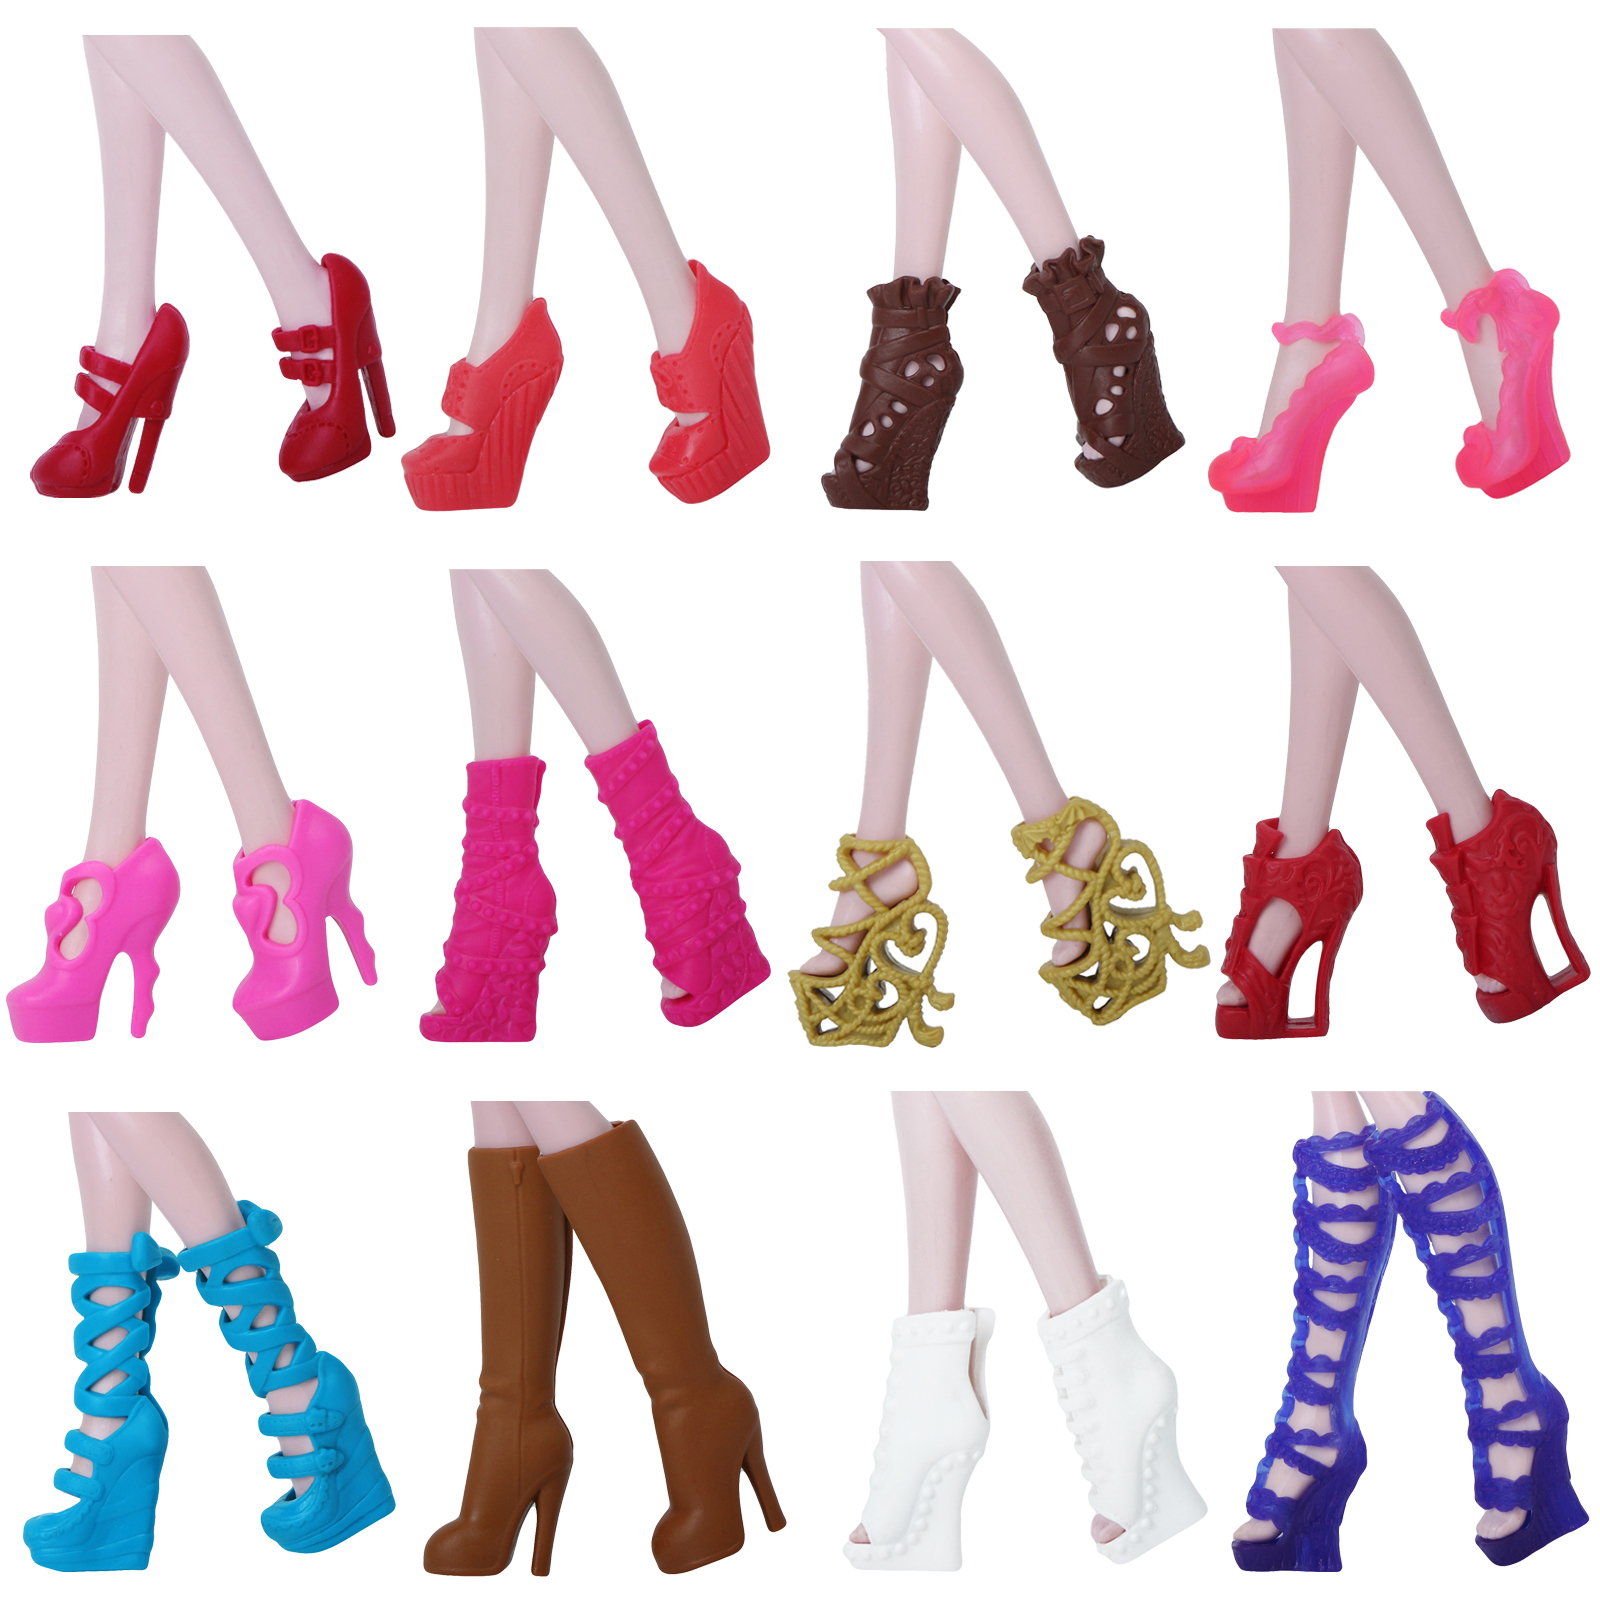 1x Winter Boots Summer Shoes High Heel Sandals Lady Dress Clothes Accessories For Monster High Doll Lot Style High Quality Toy